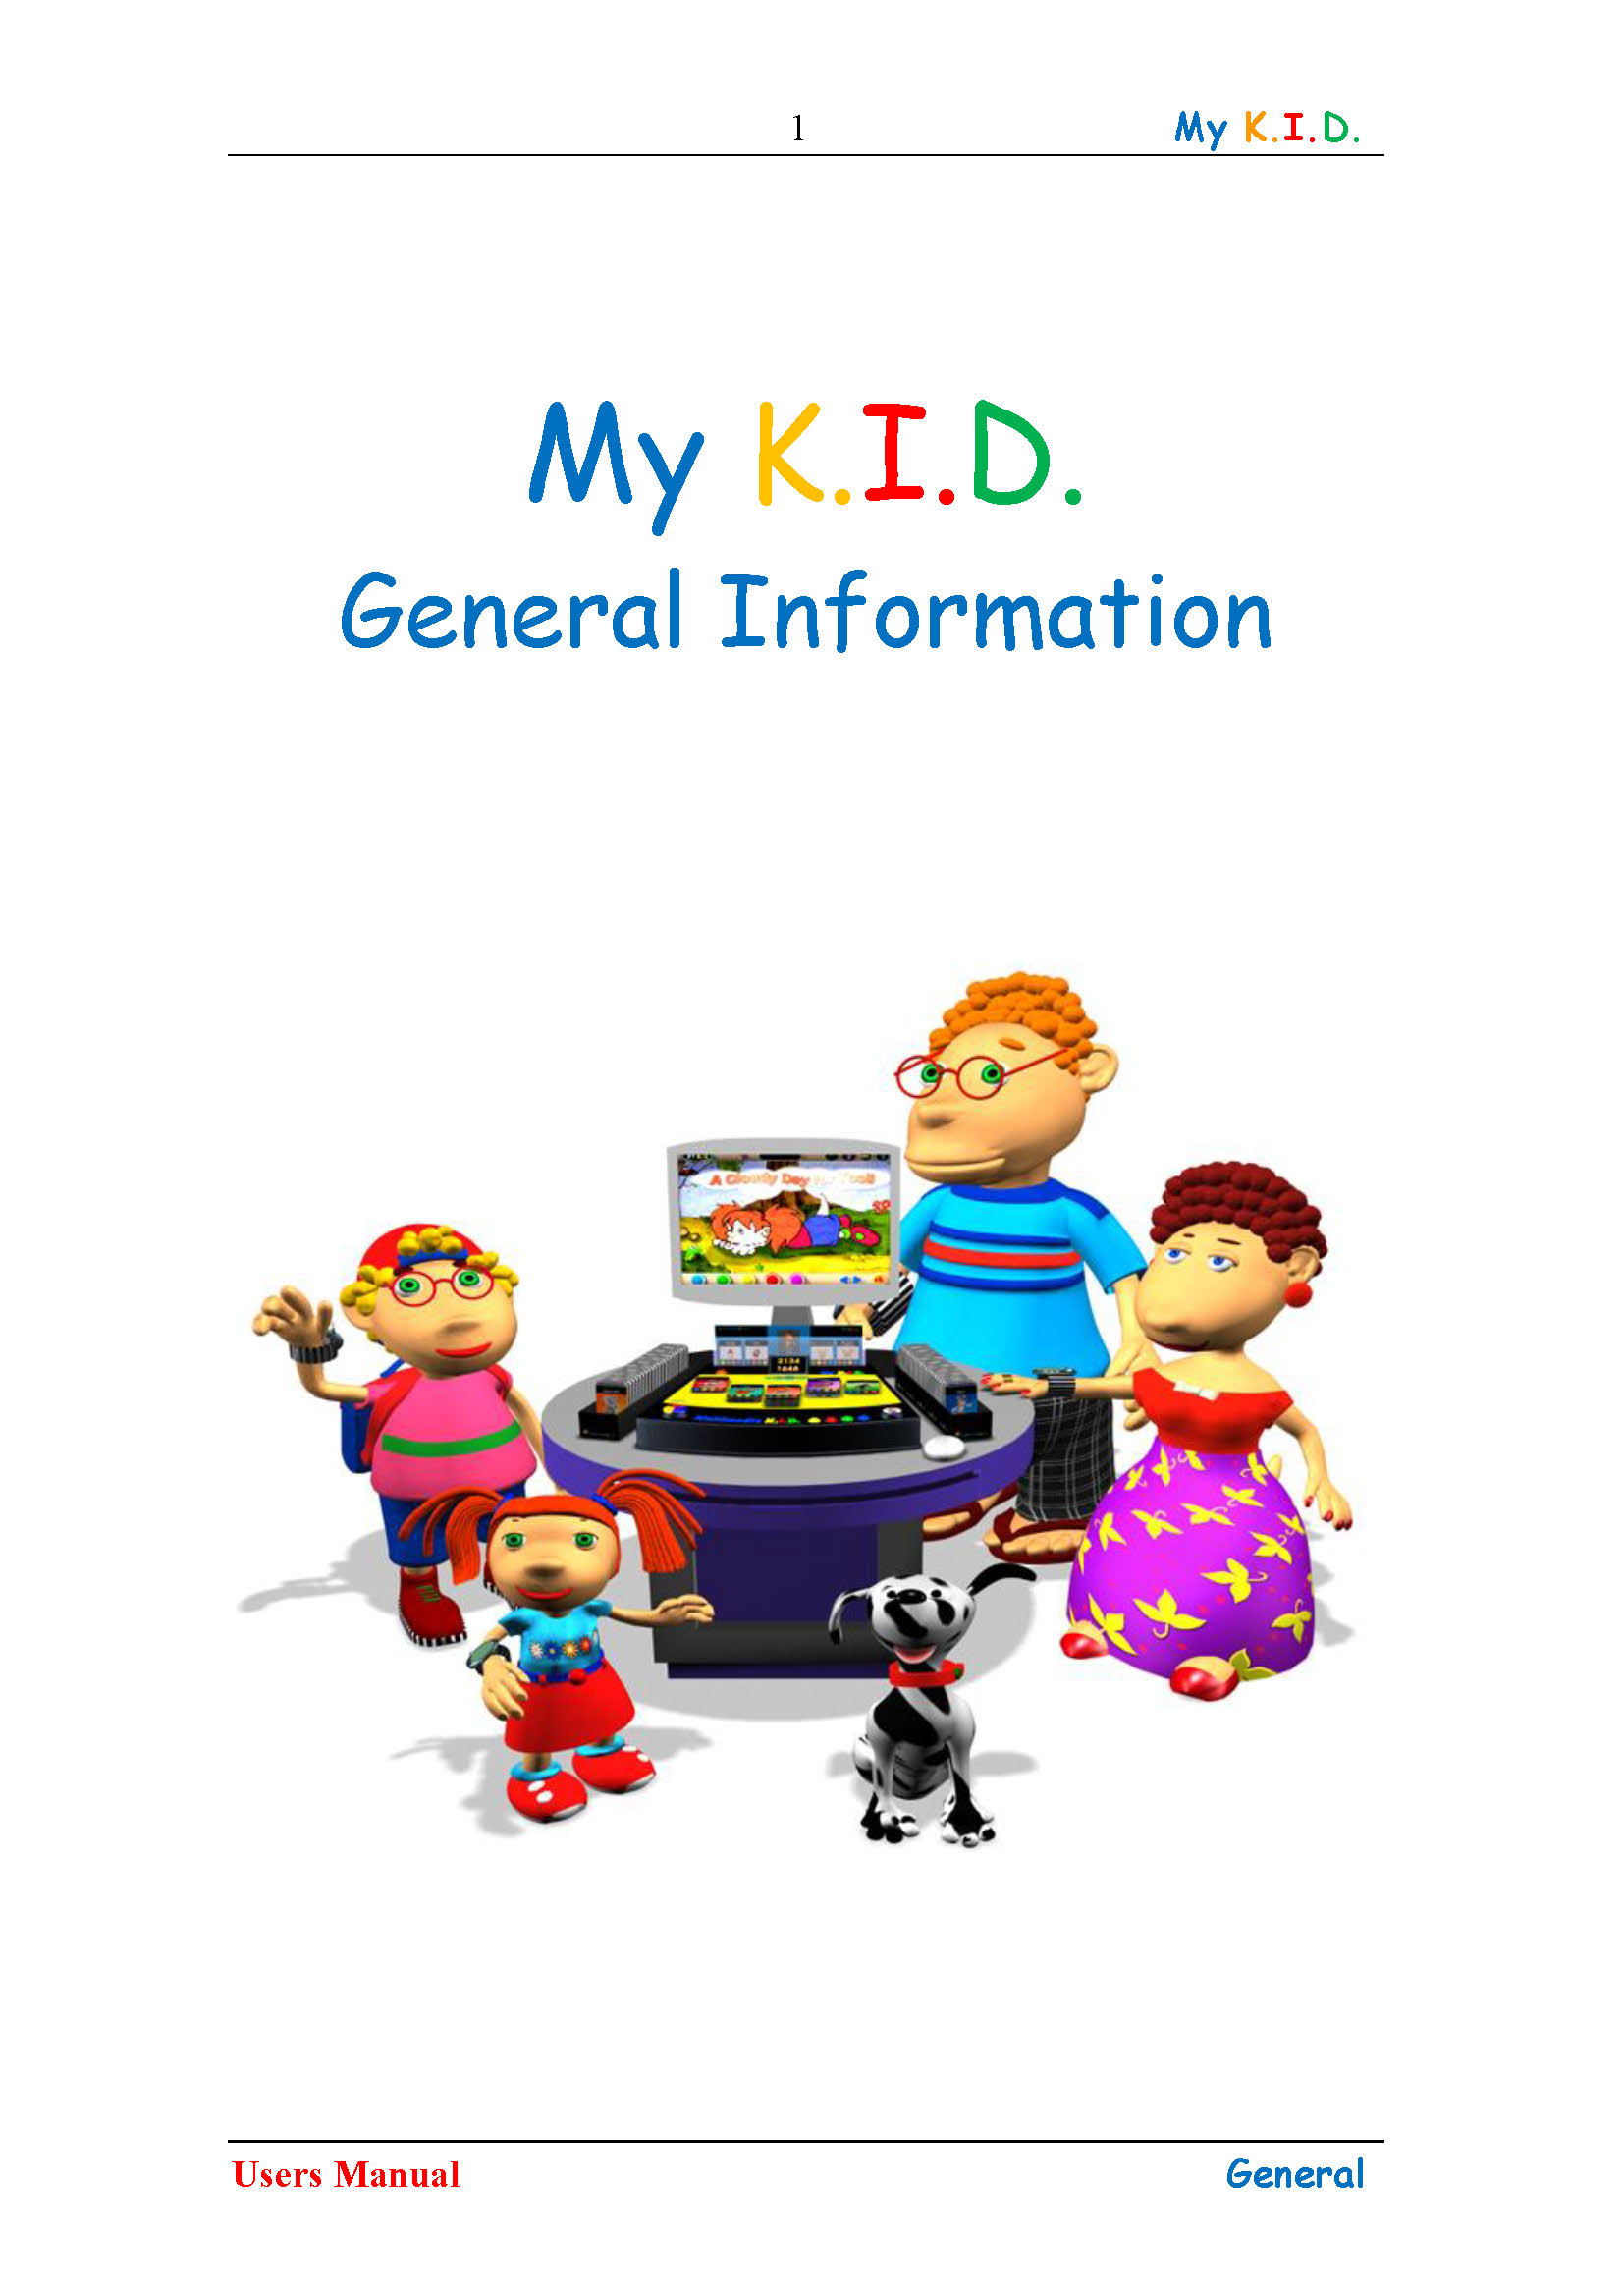 General_Manual_Information_-עדכני_Page_01